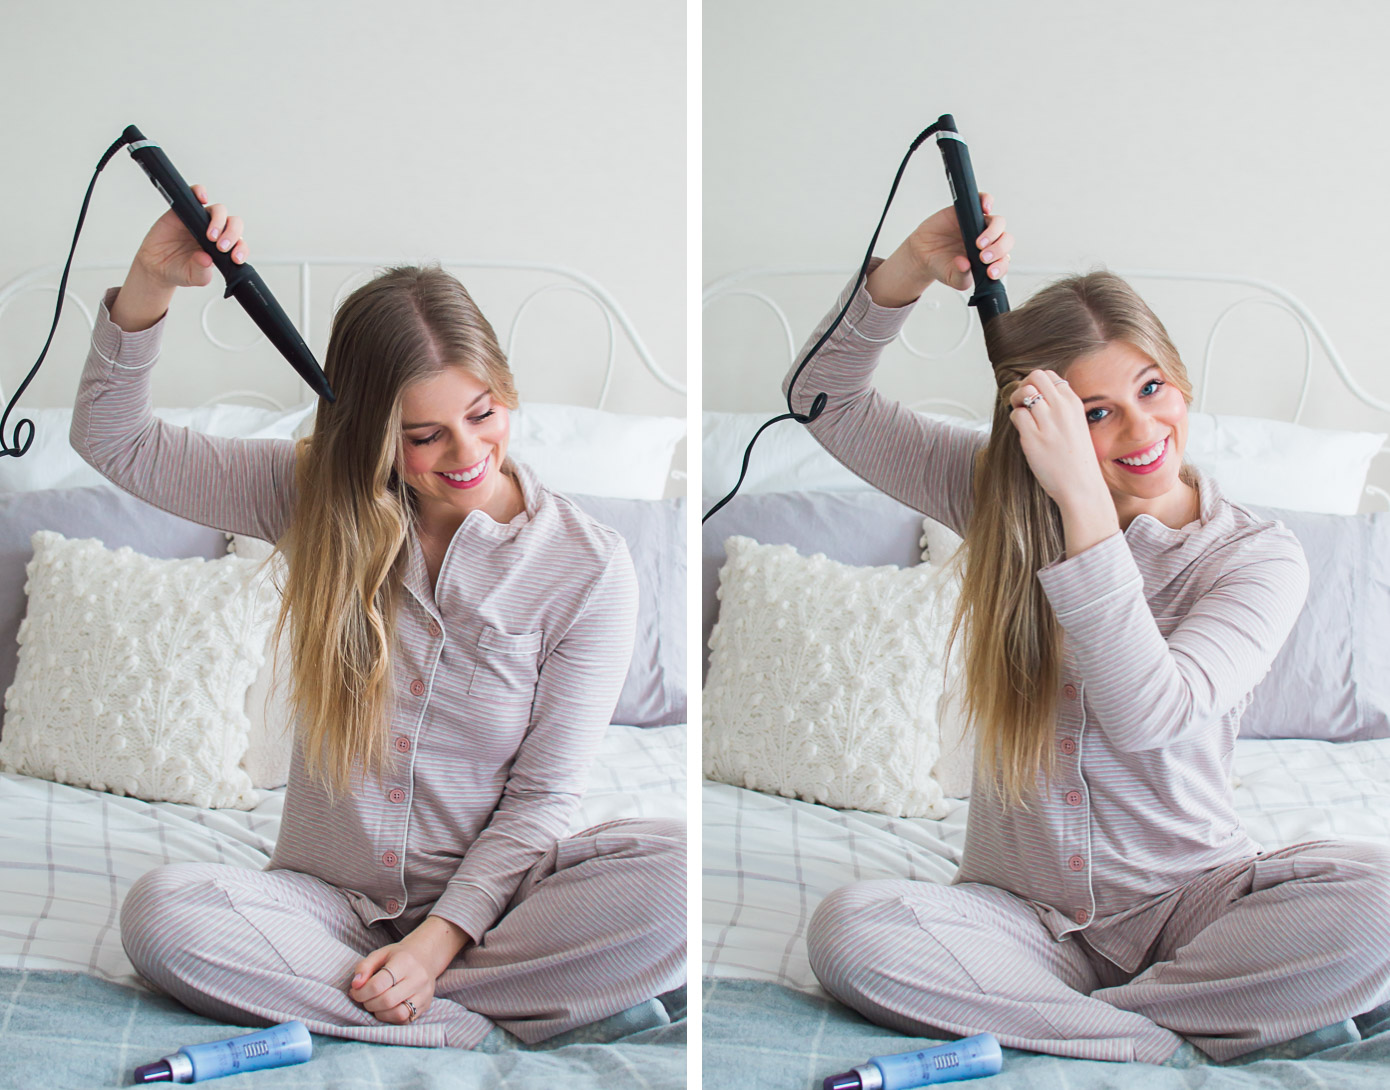 Haircare Gift Ideas | Curling Wand Tutorial | Louella Reese Life & Style Blog